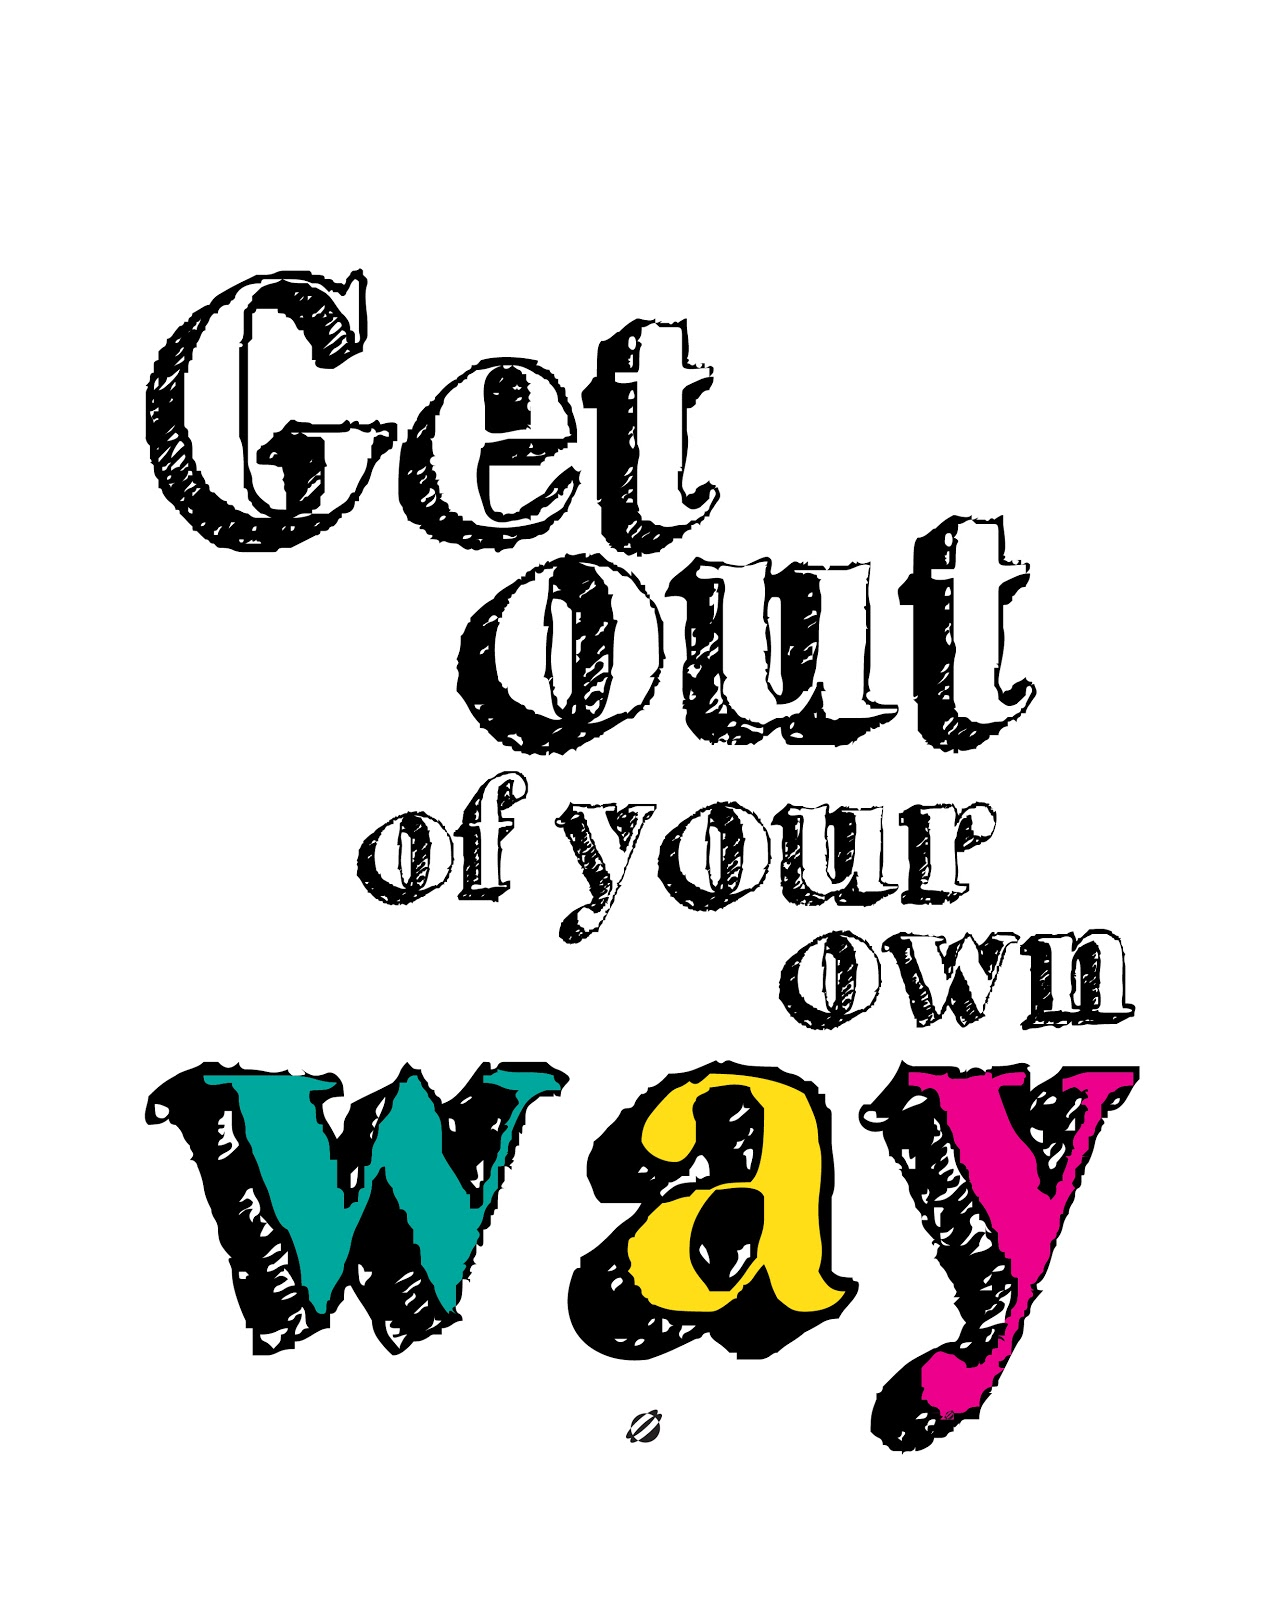 LostBumblebee ©2014 GET OUT OF YOUR OWN WAY! #freeprintable personal use only